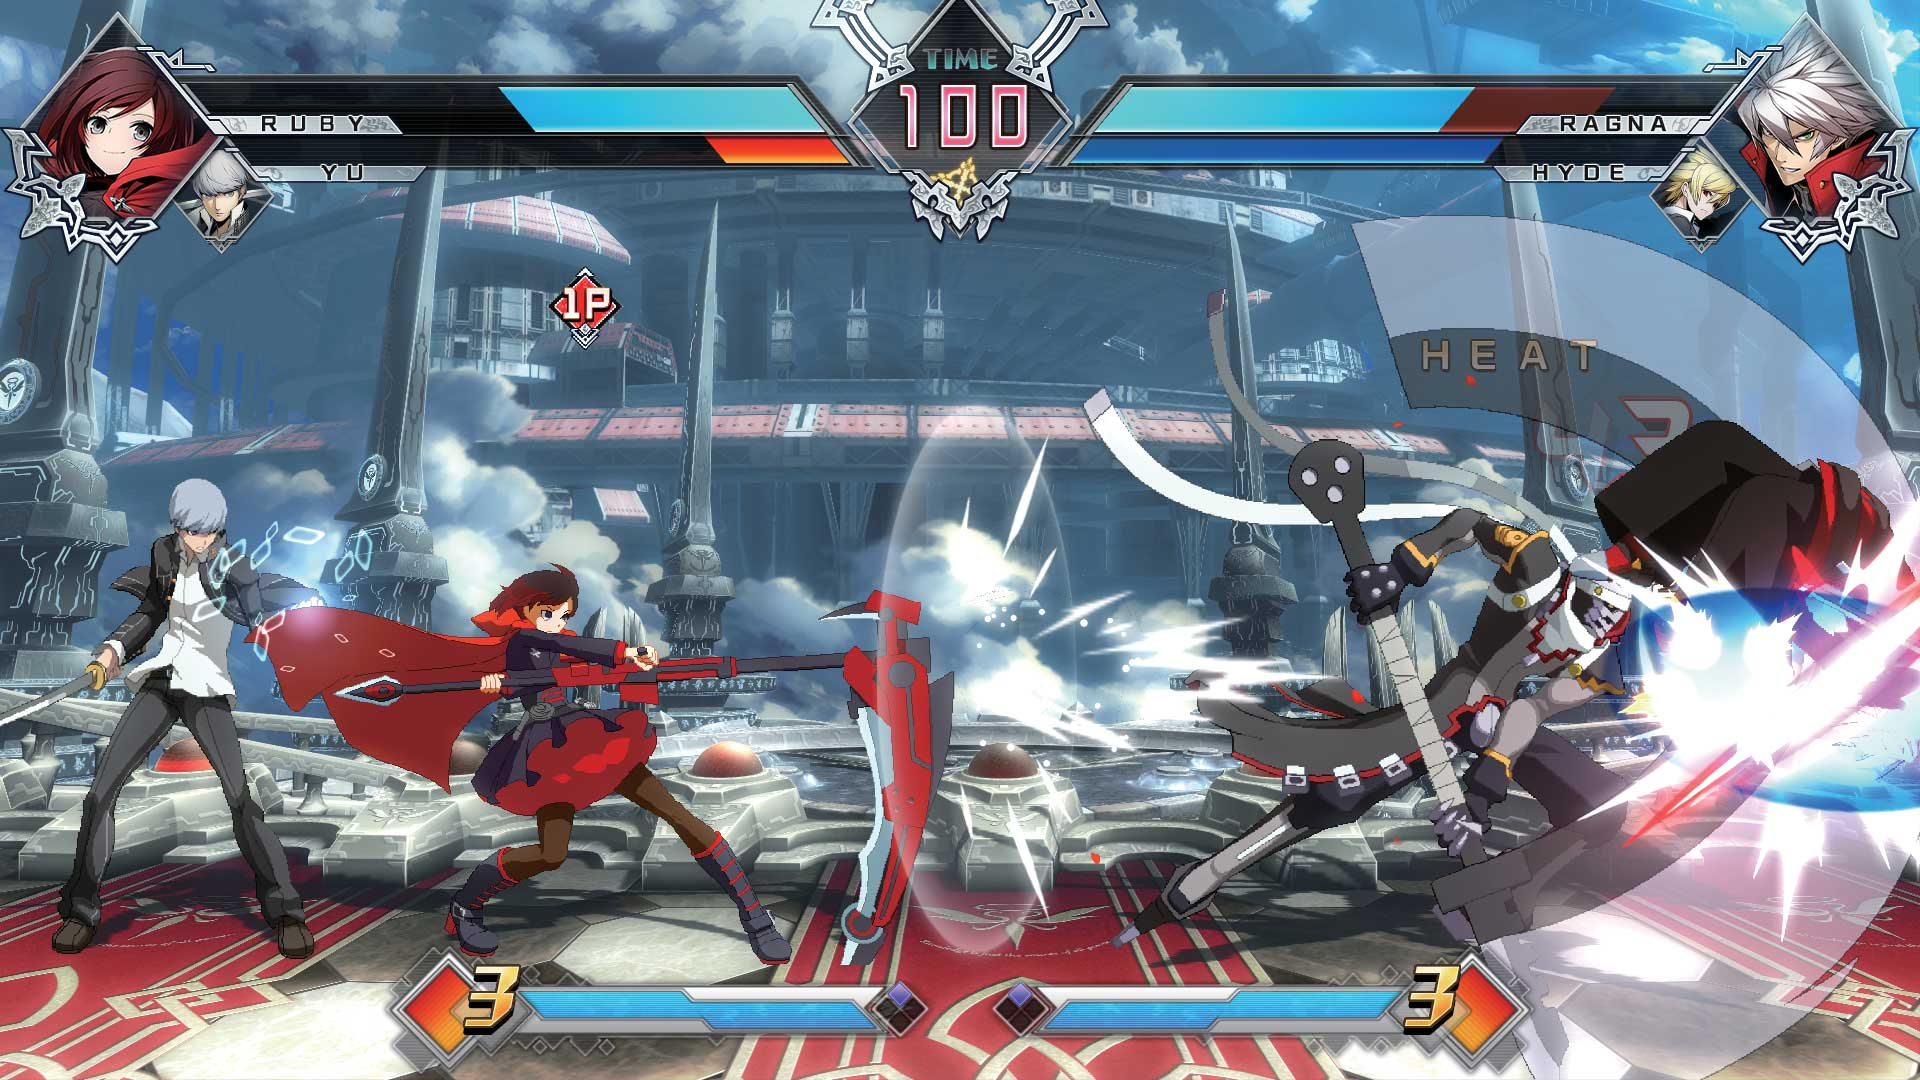 blazblue-cross-tag-battle-01-arc-system-works